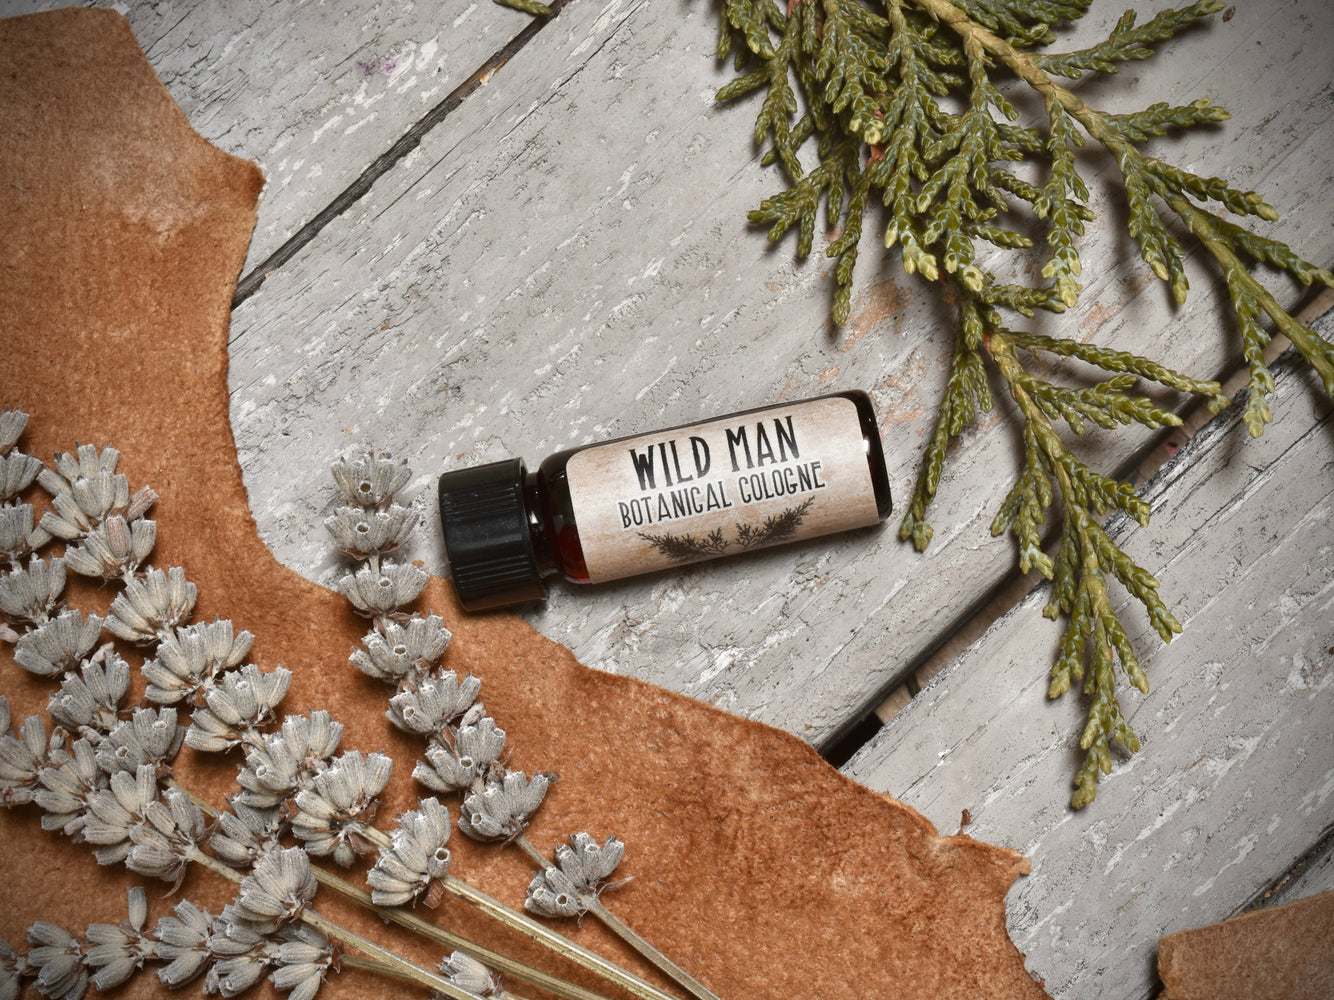 Wild Man All Natural Cologne - The Original